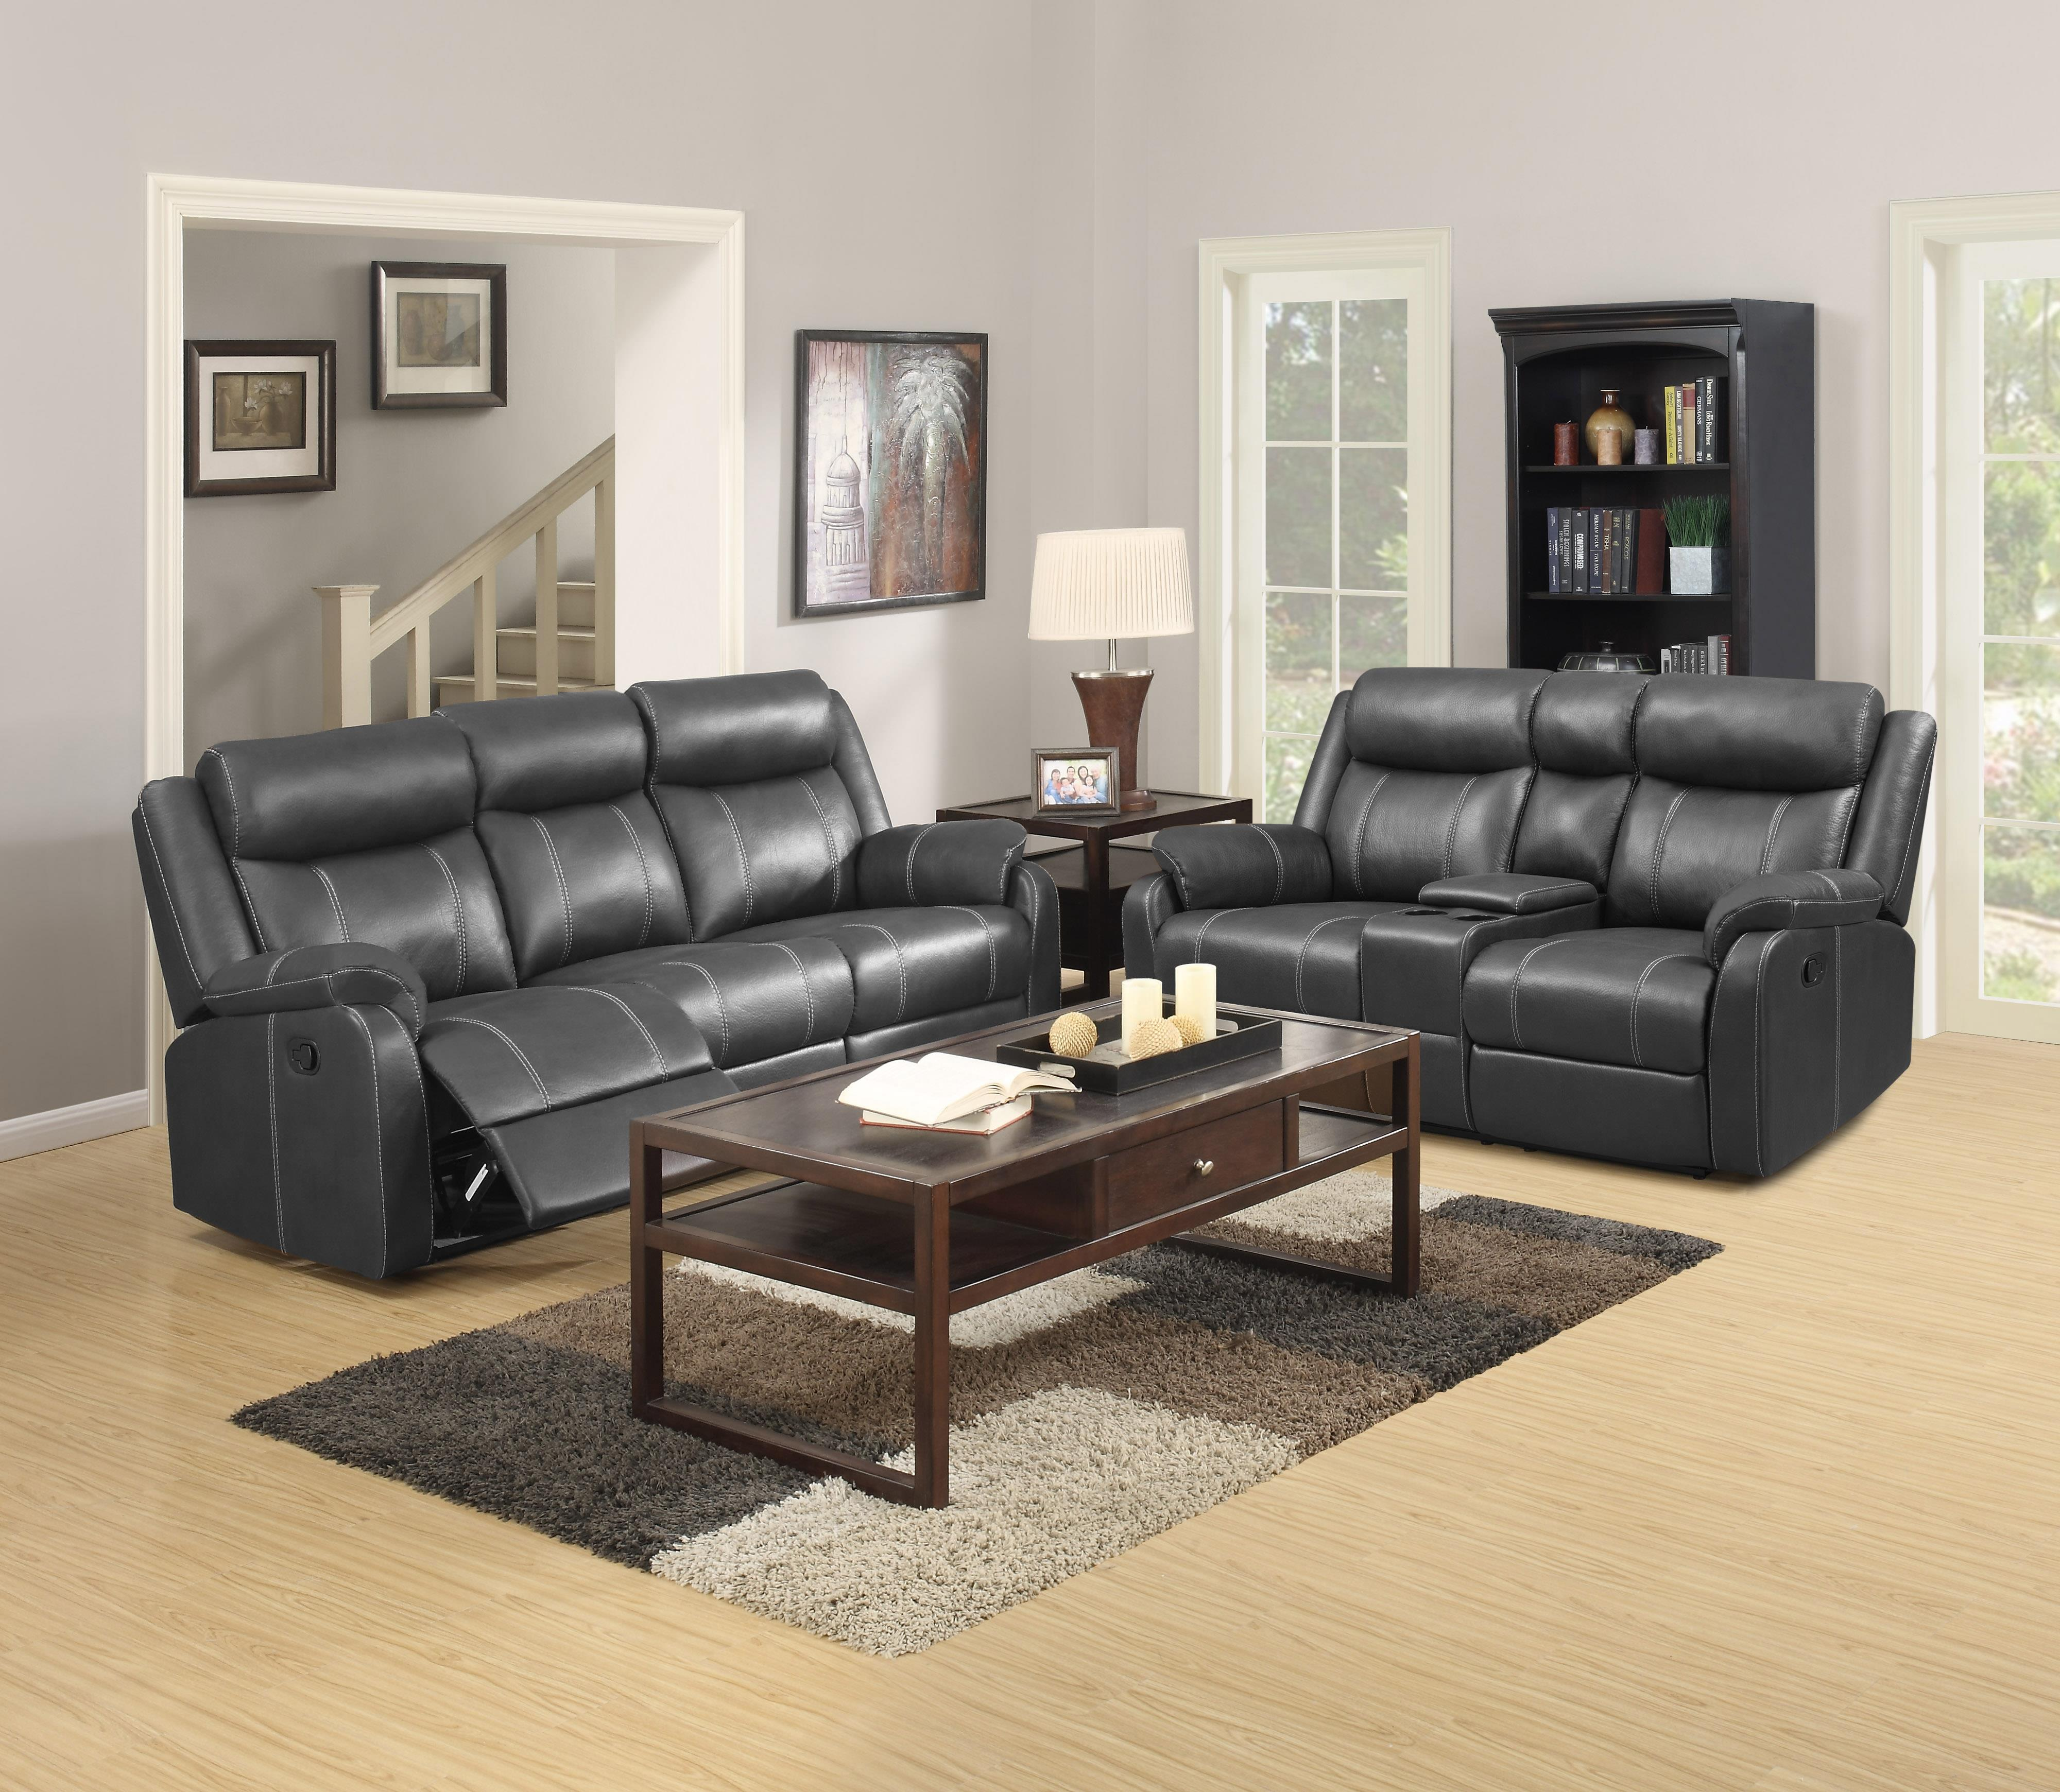 Klaussner international domino us reclining living room for Living room furniture groups